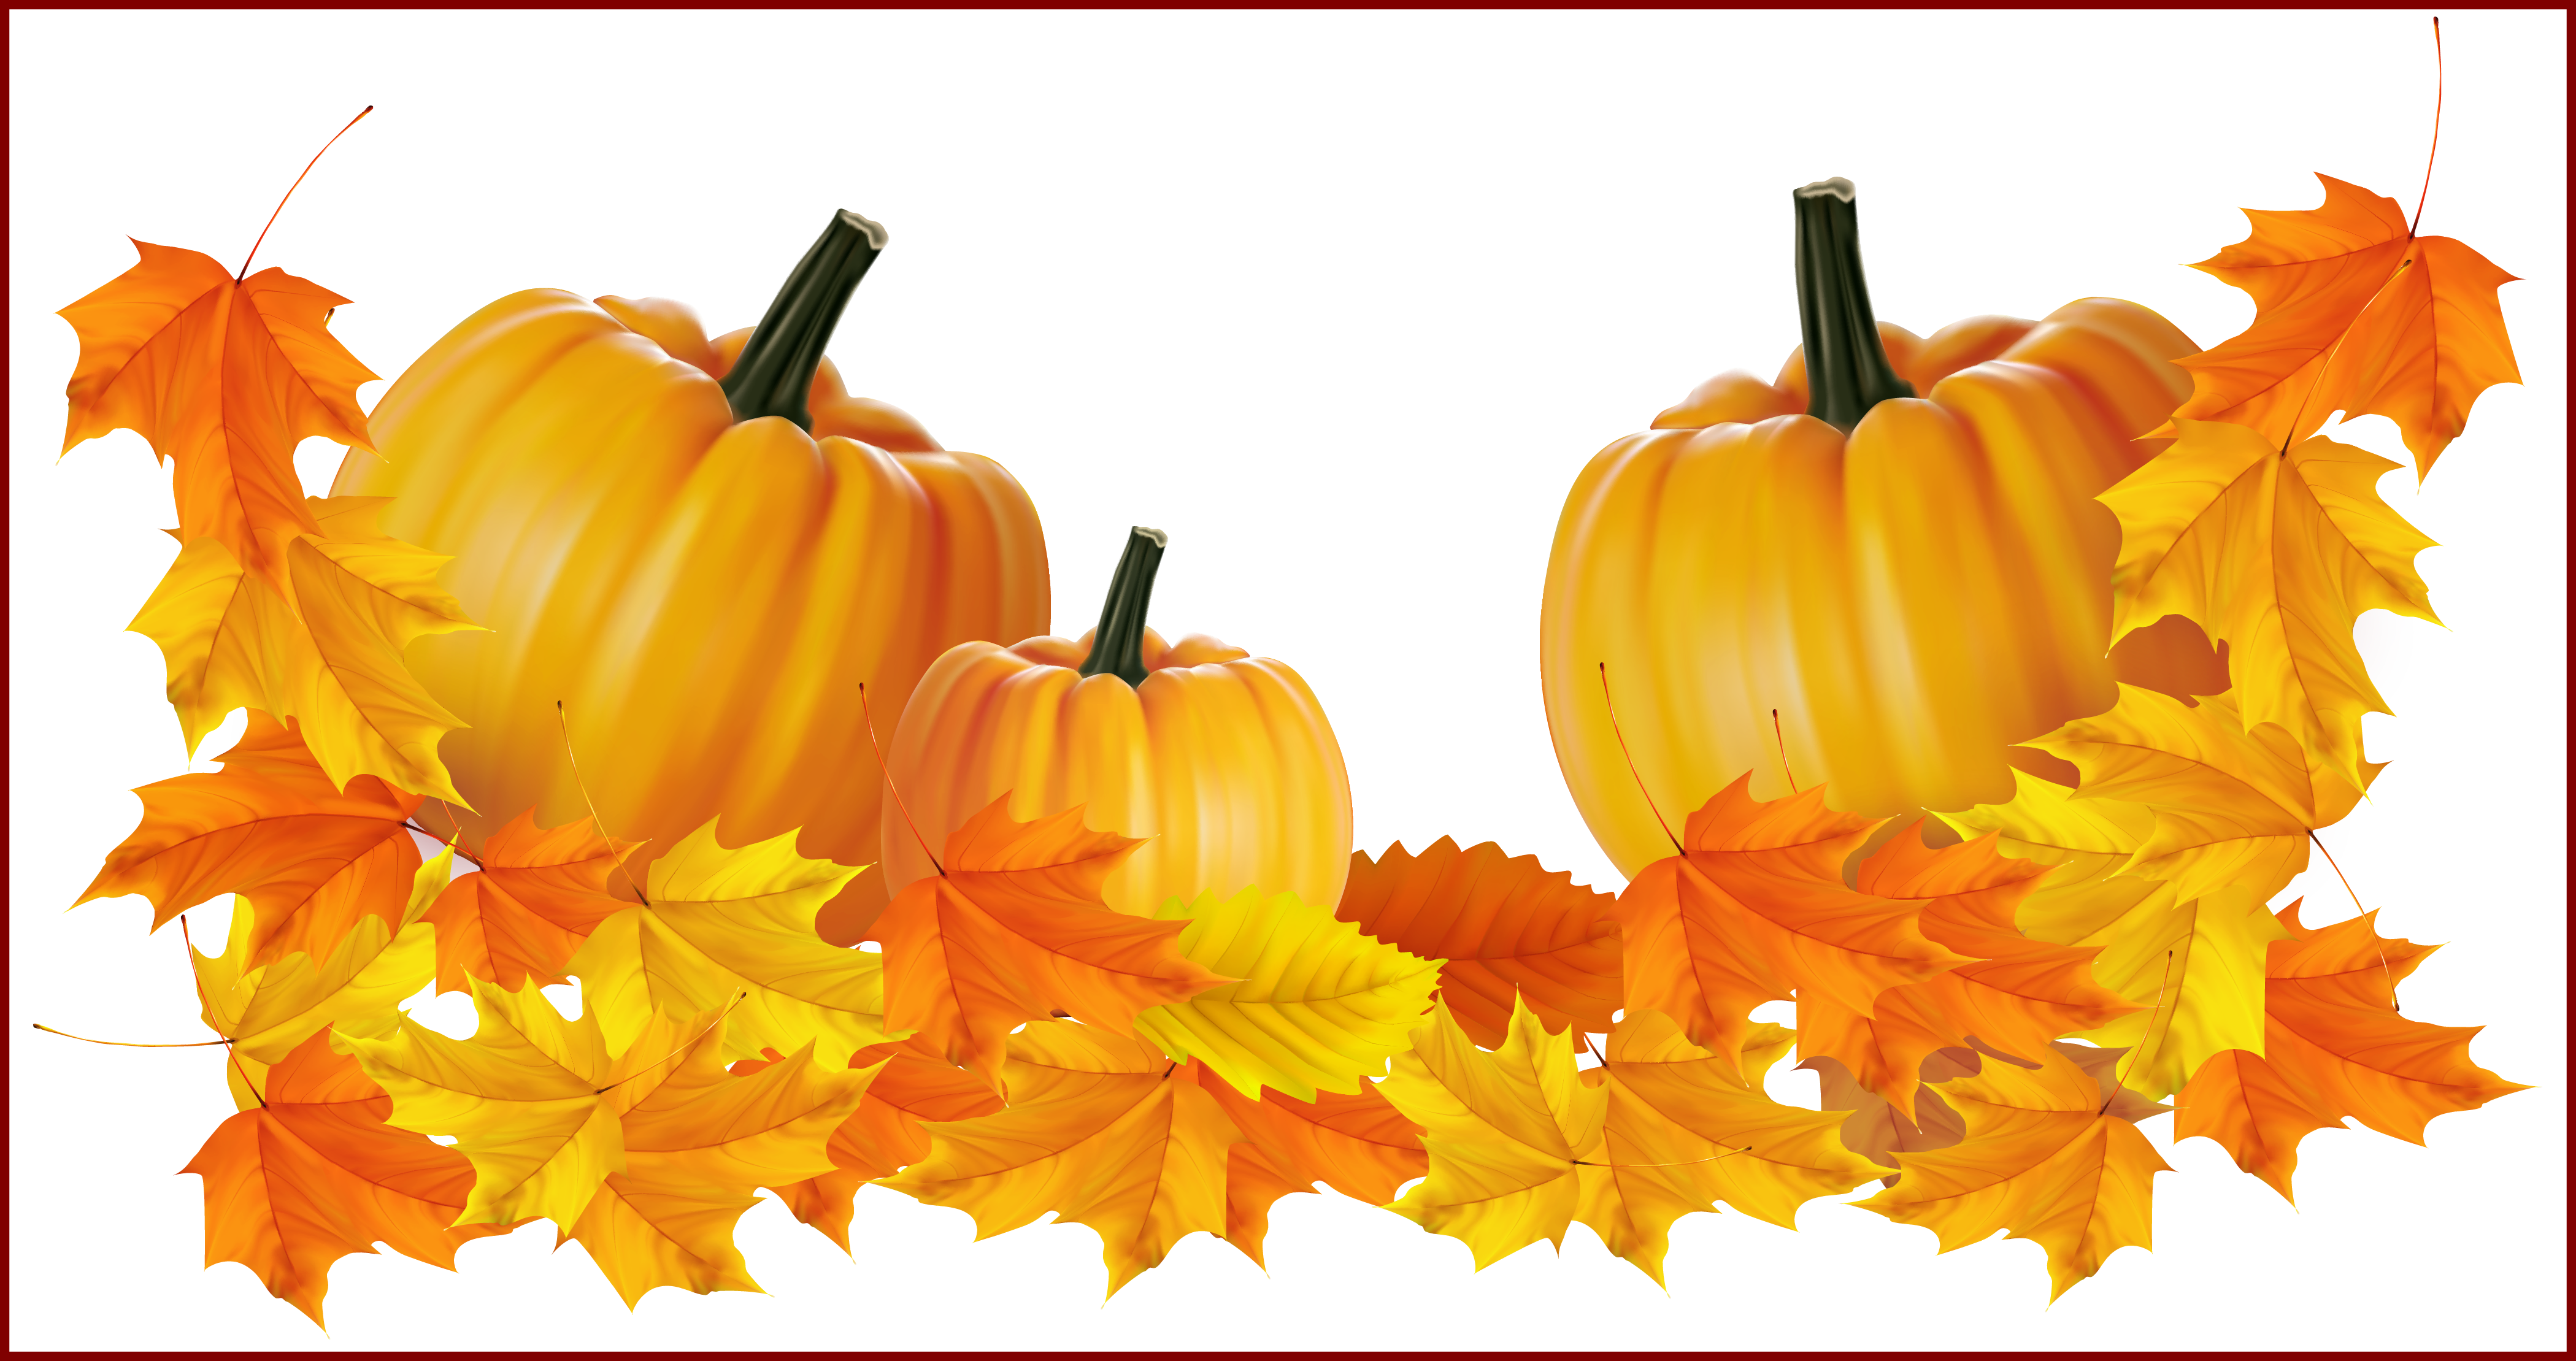 Pumpkin watercolor clipart image royalty free download Incredible Transparent Thanksgiving Pumpkin Decor Clipart Png Fonts ... image royalty free download